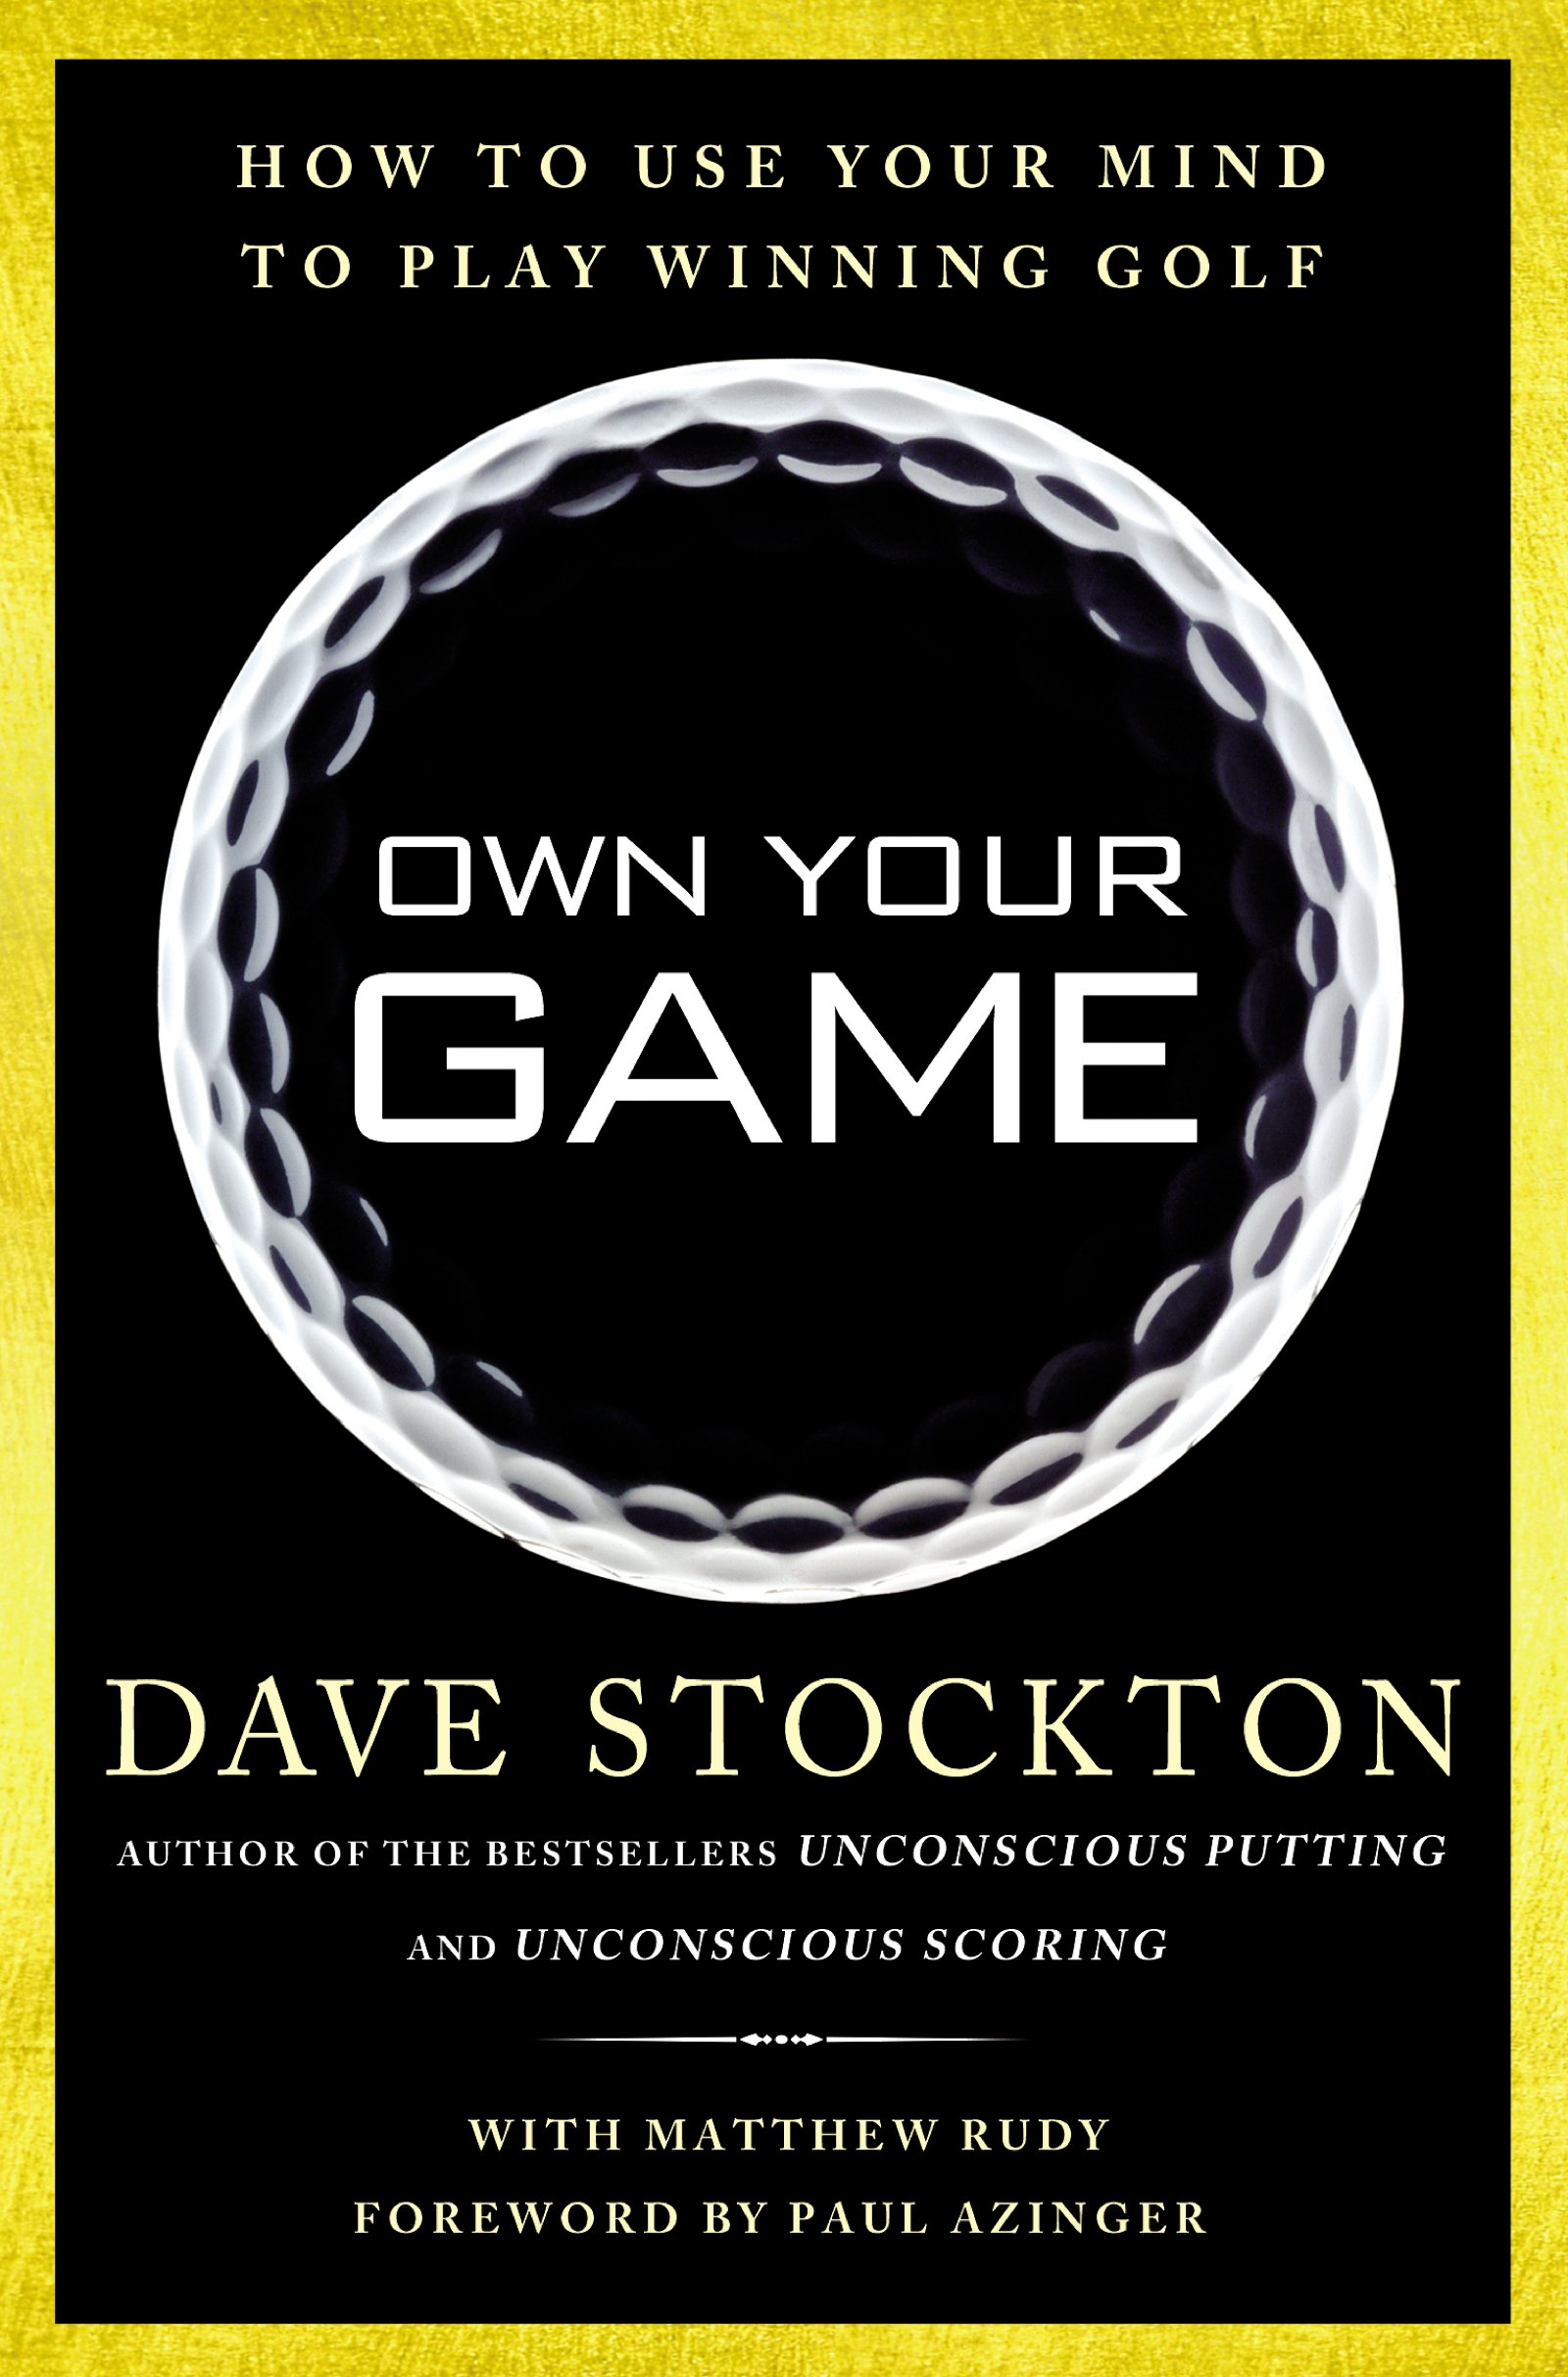 Image OfOwn Your Game: How To Use Your Mind To Play Winning Golf (English Edition)